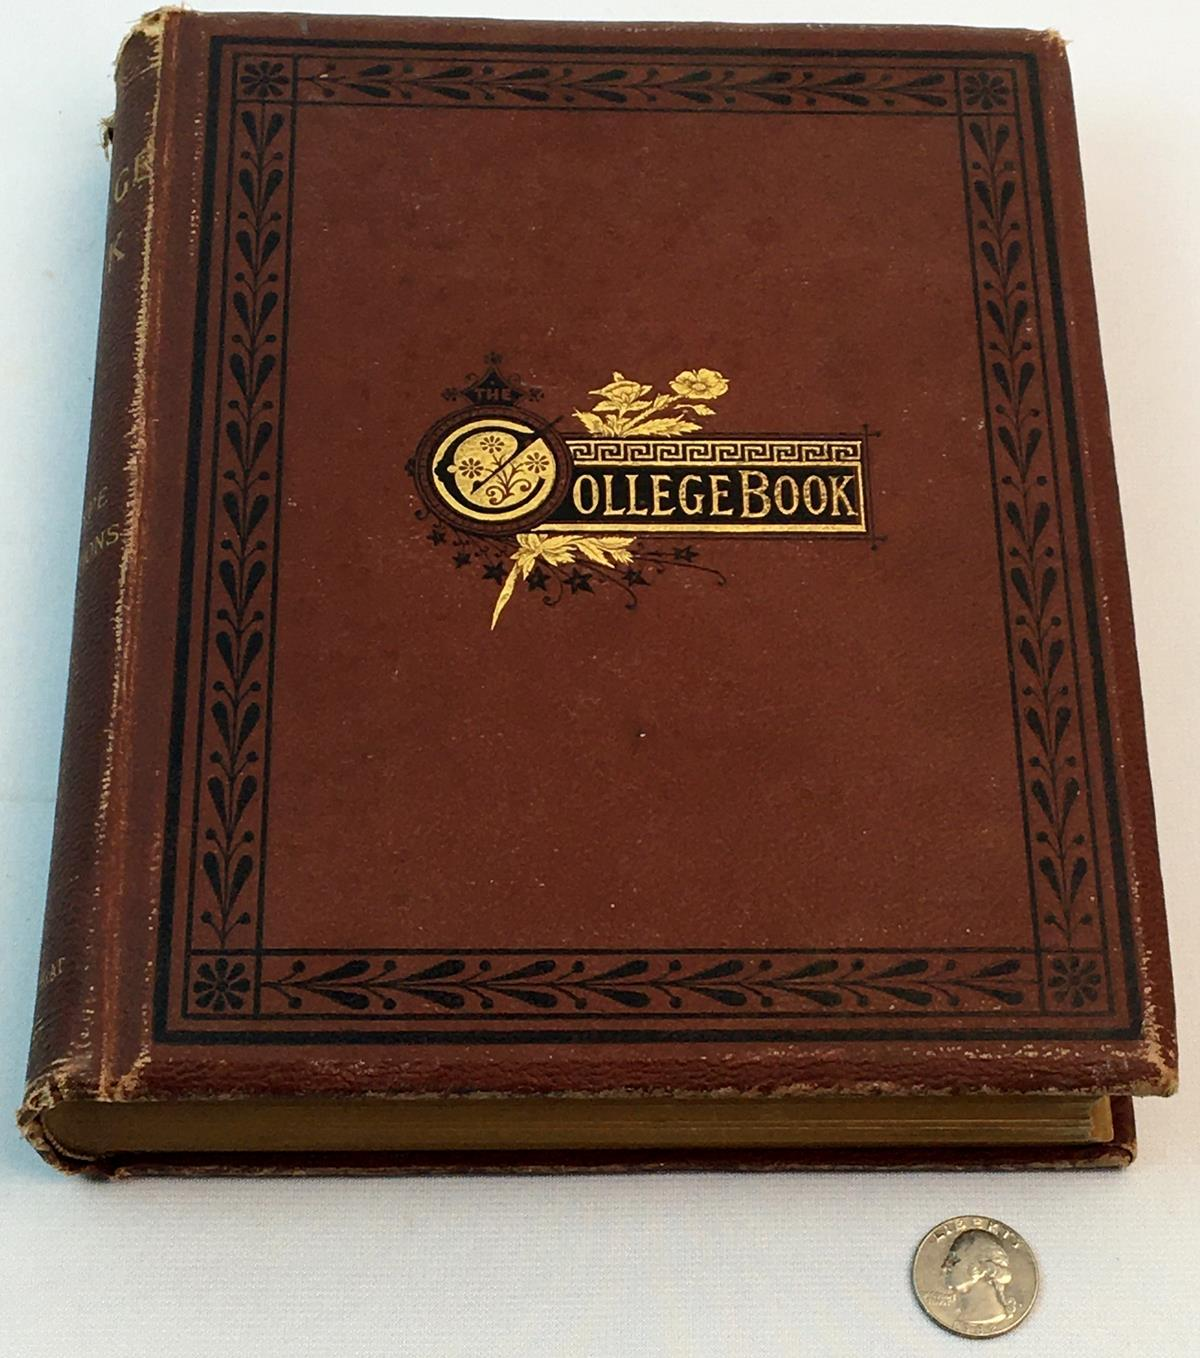 1878 The College Book by Richardson & Clark FIRST EDITION (Harvard, Cornell, Yale, Columbia, Etc..)